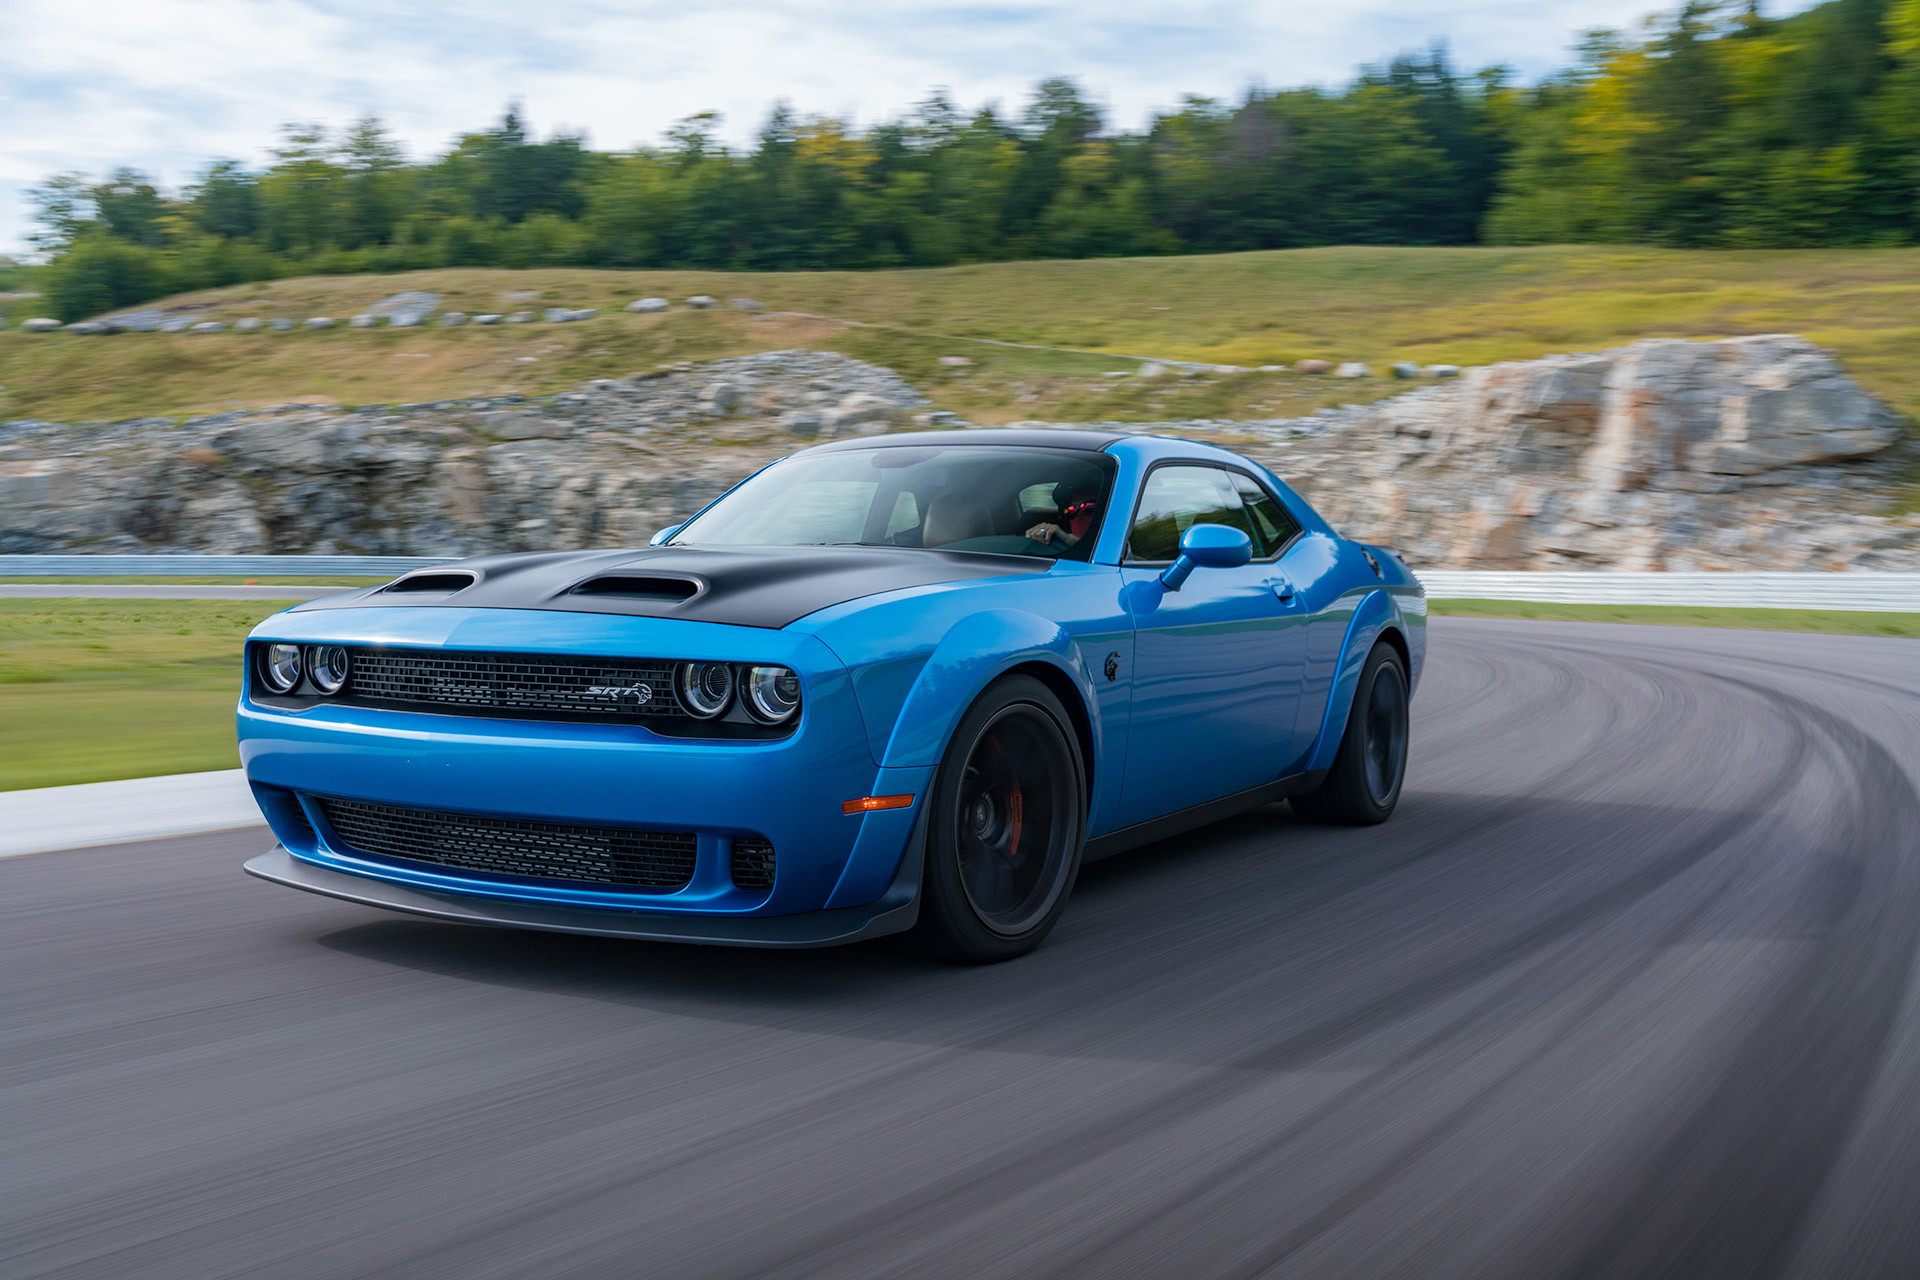 2019 Dodge Challenger SRT® Hellcat Redeye in driving